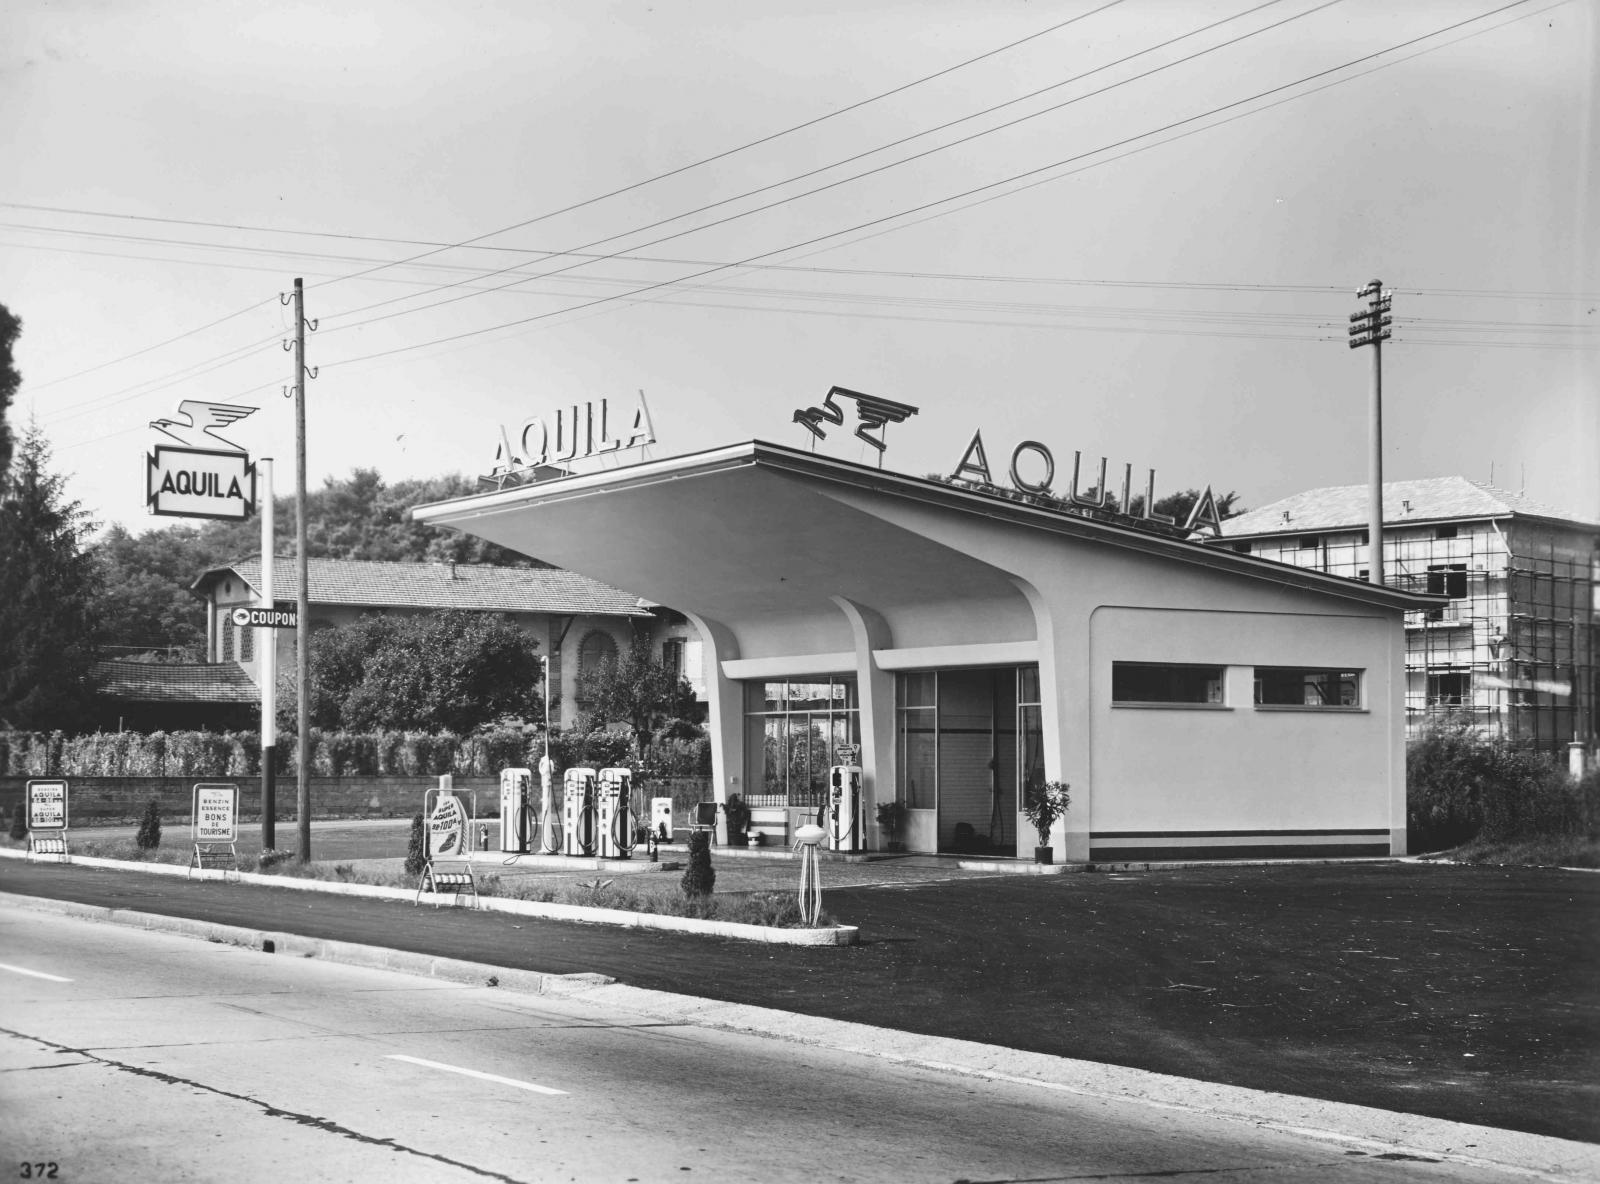 Aquila gas station